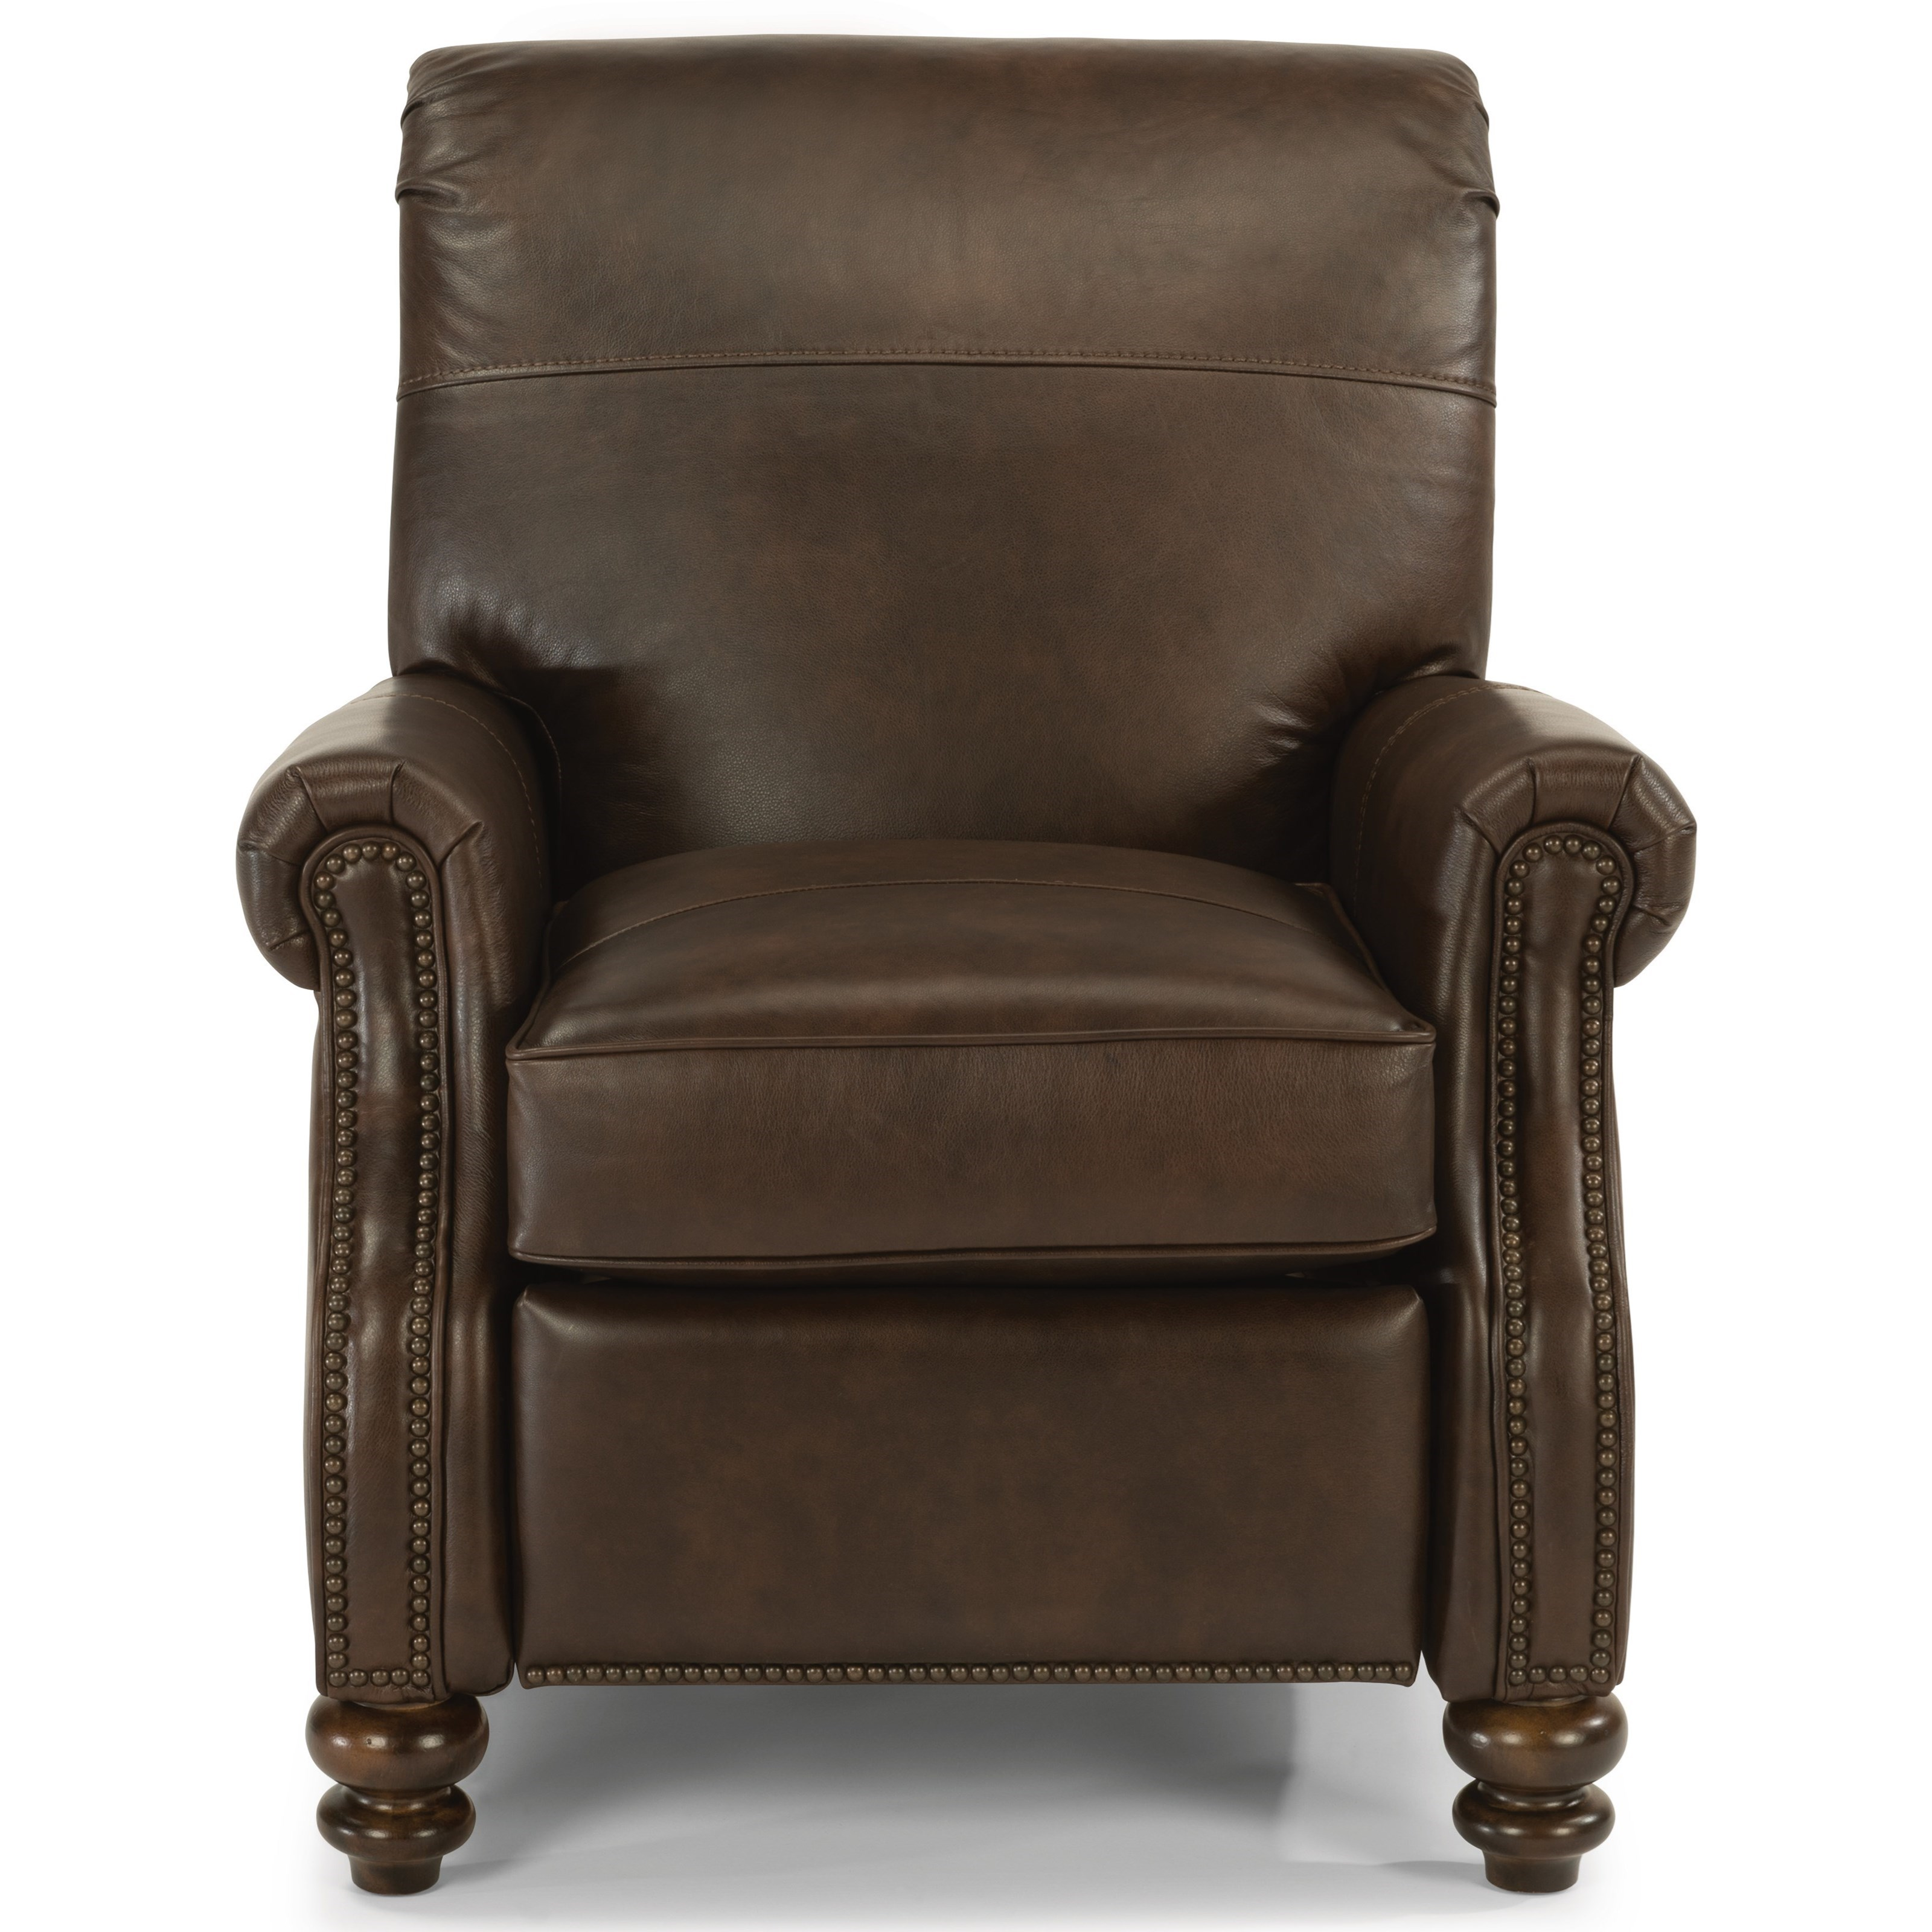 Bay Bridge Power High Leg Recliner by Flexsteel at Jordan's Home Furnishings